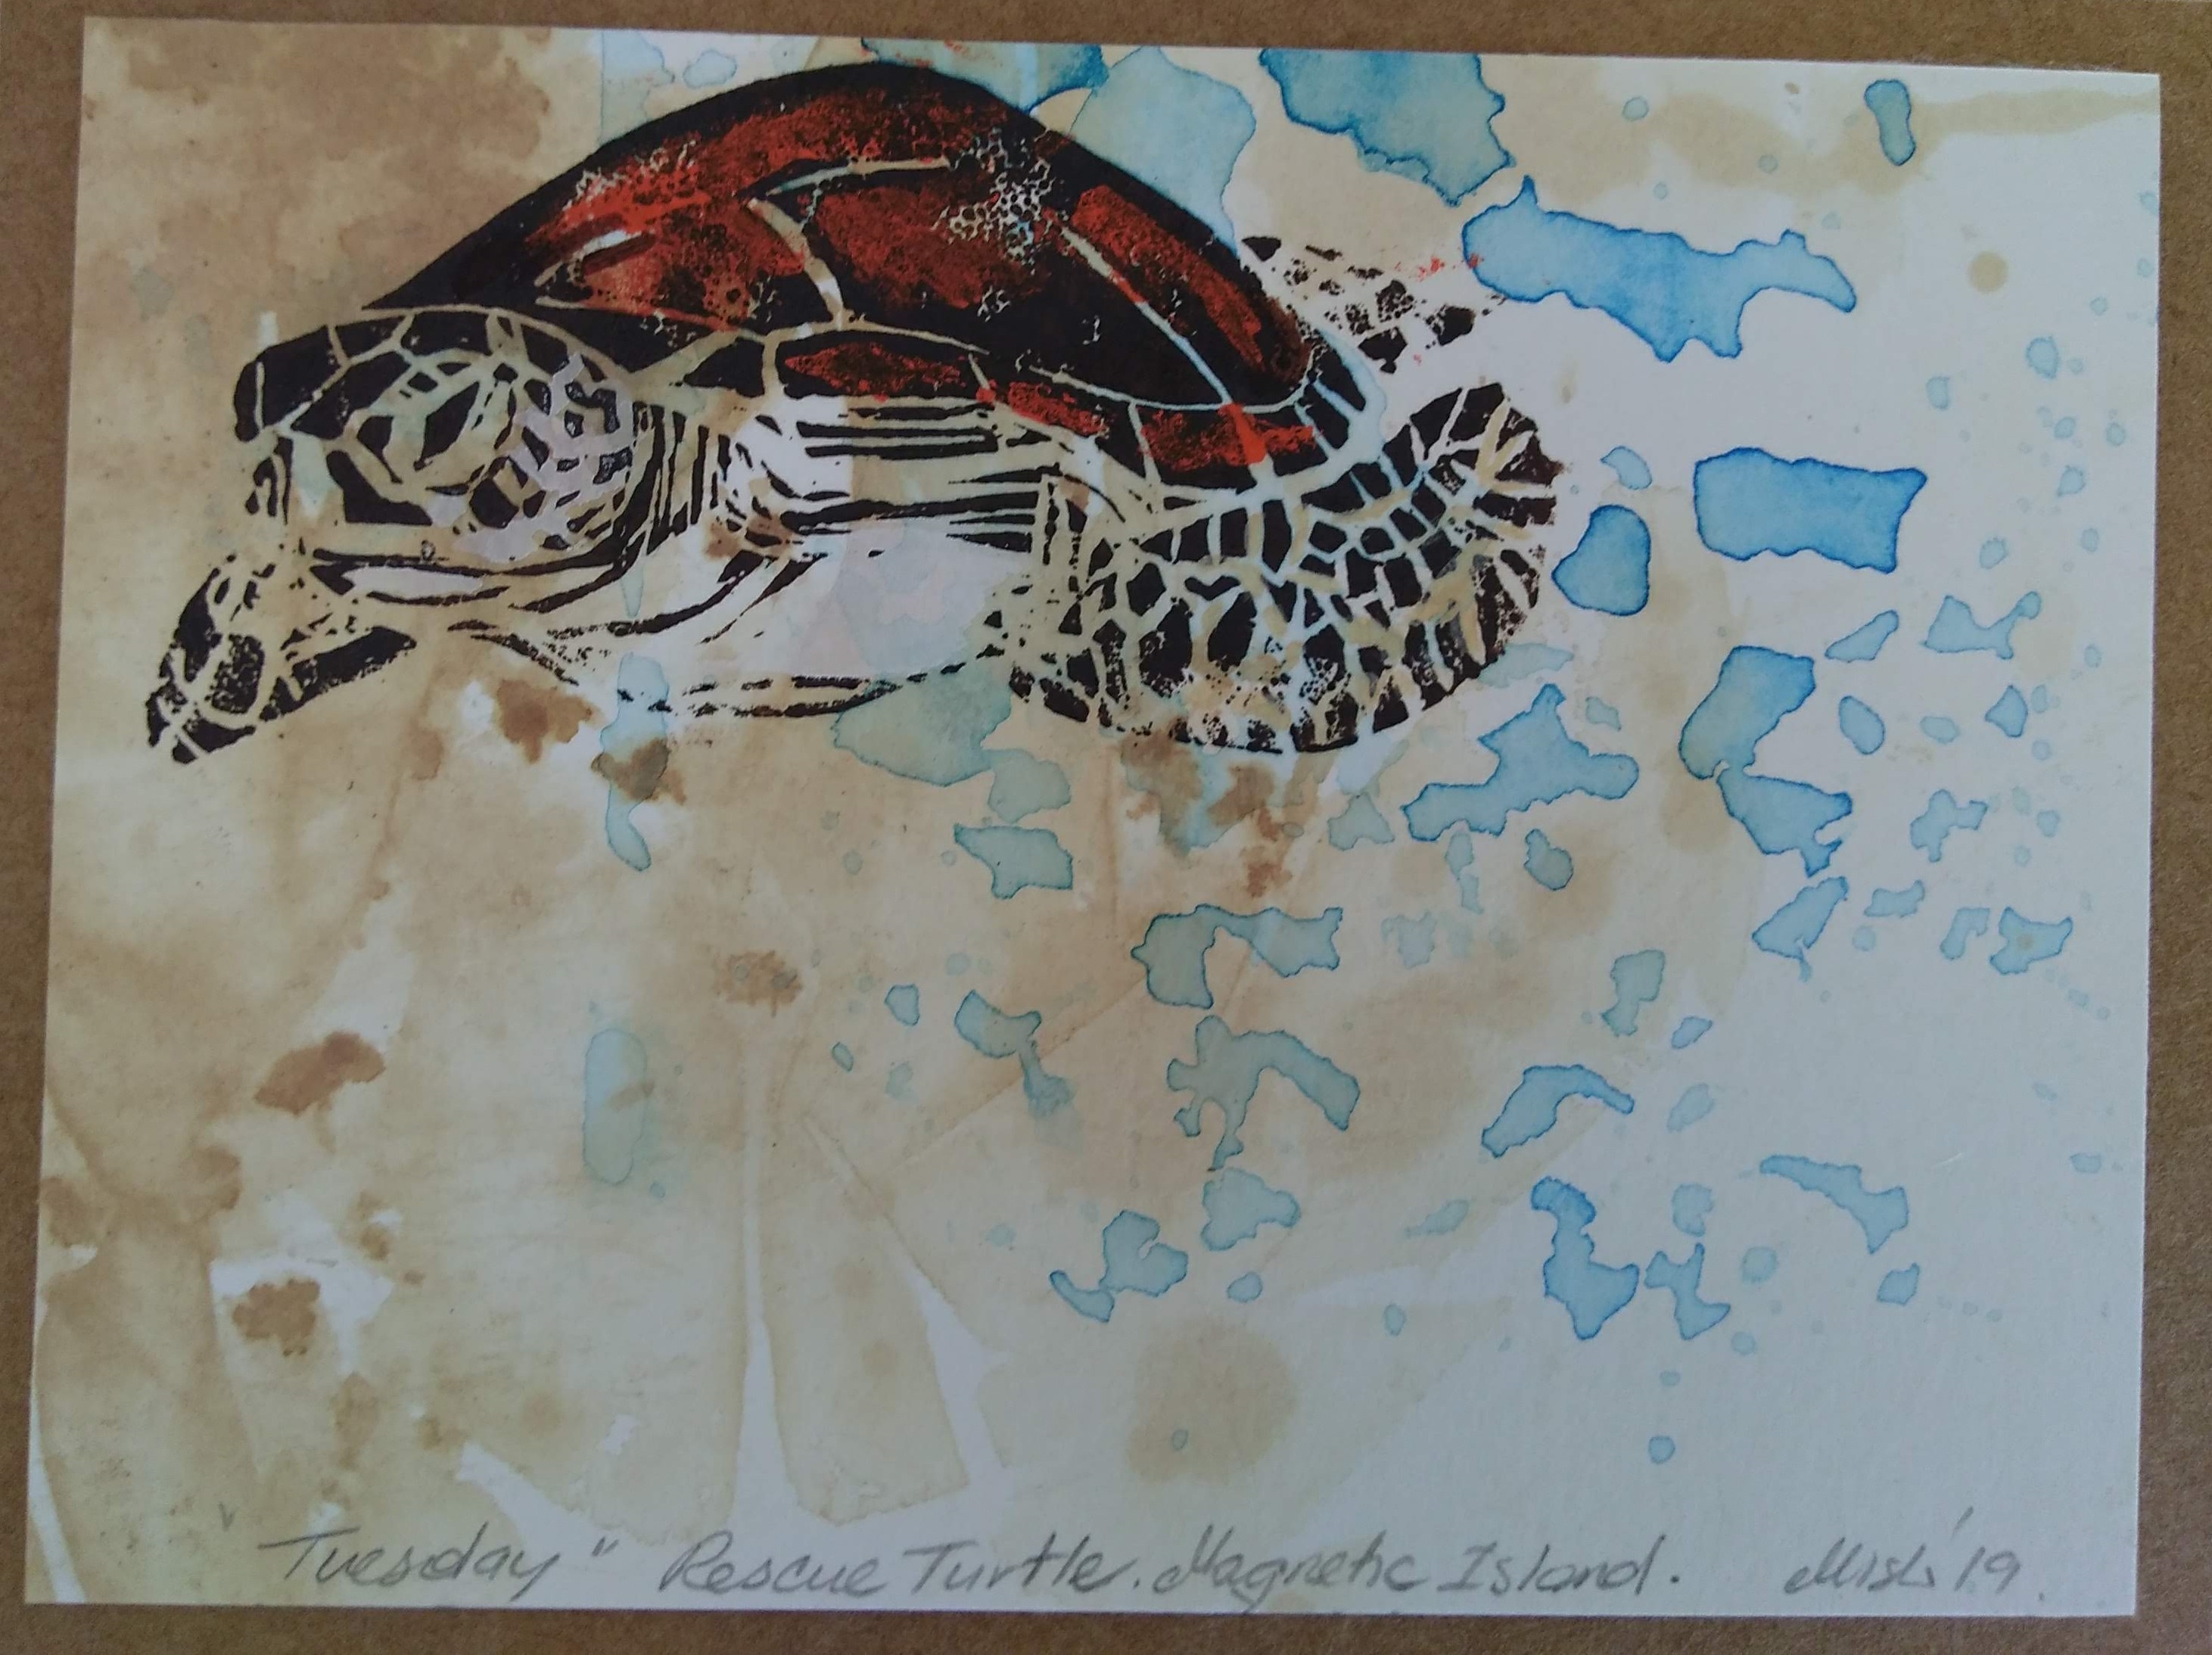 47_Michelle_McGuinn__Tuesday_-_Rescue_Turtle_Magnetic_Island.jpg